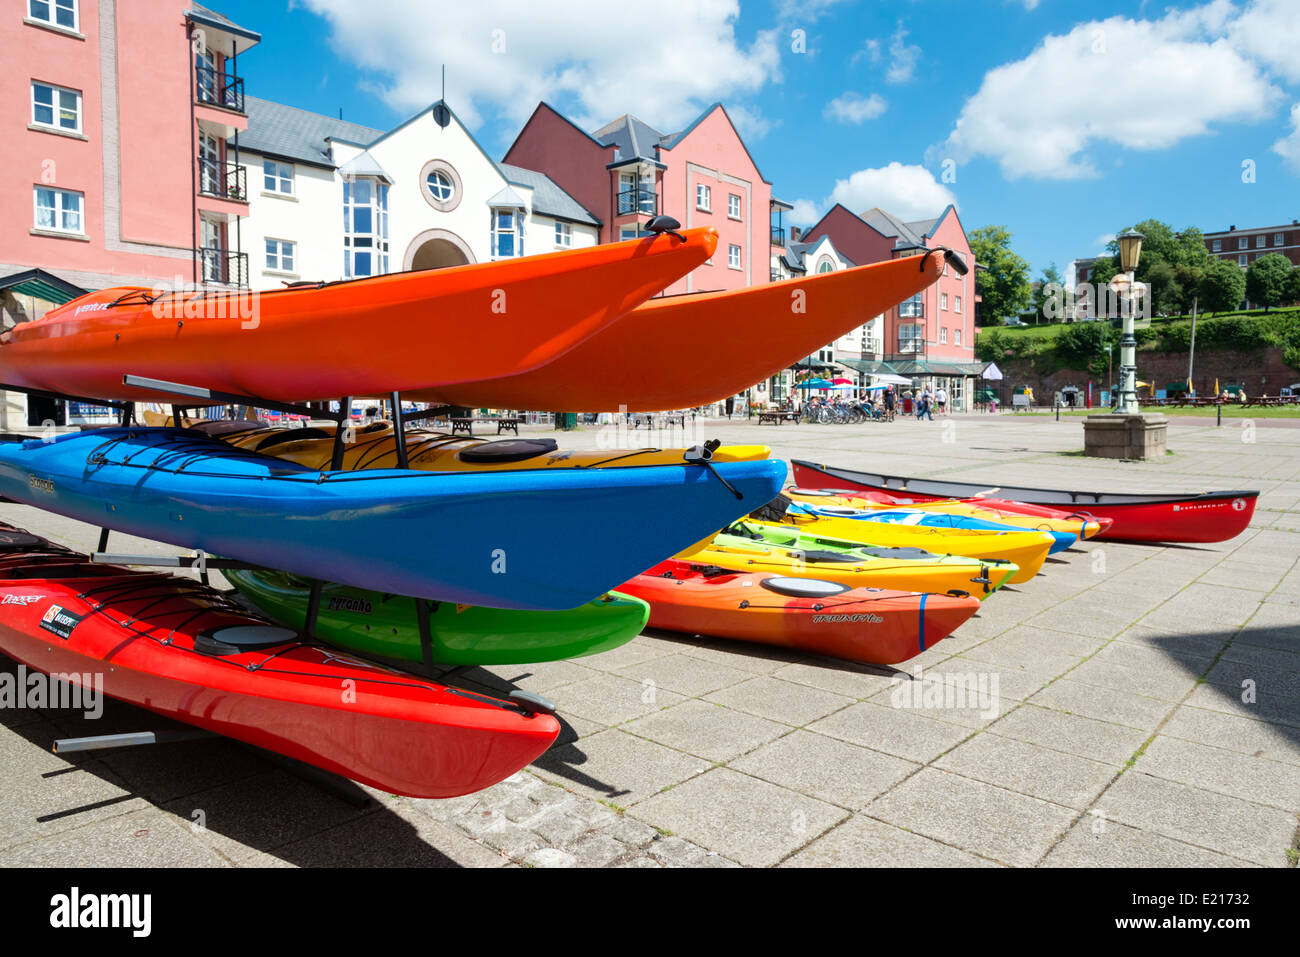 Kayaks for hire at The Quay, Exeter, Devon, UK. - Stock Image